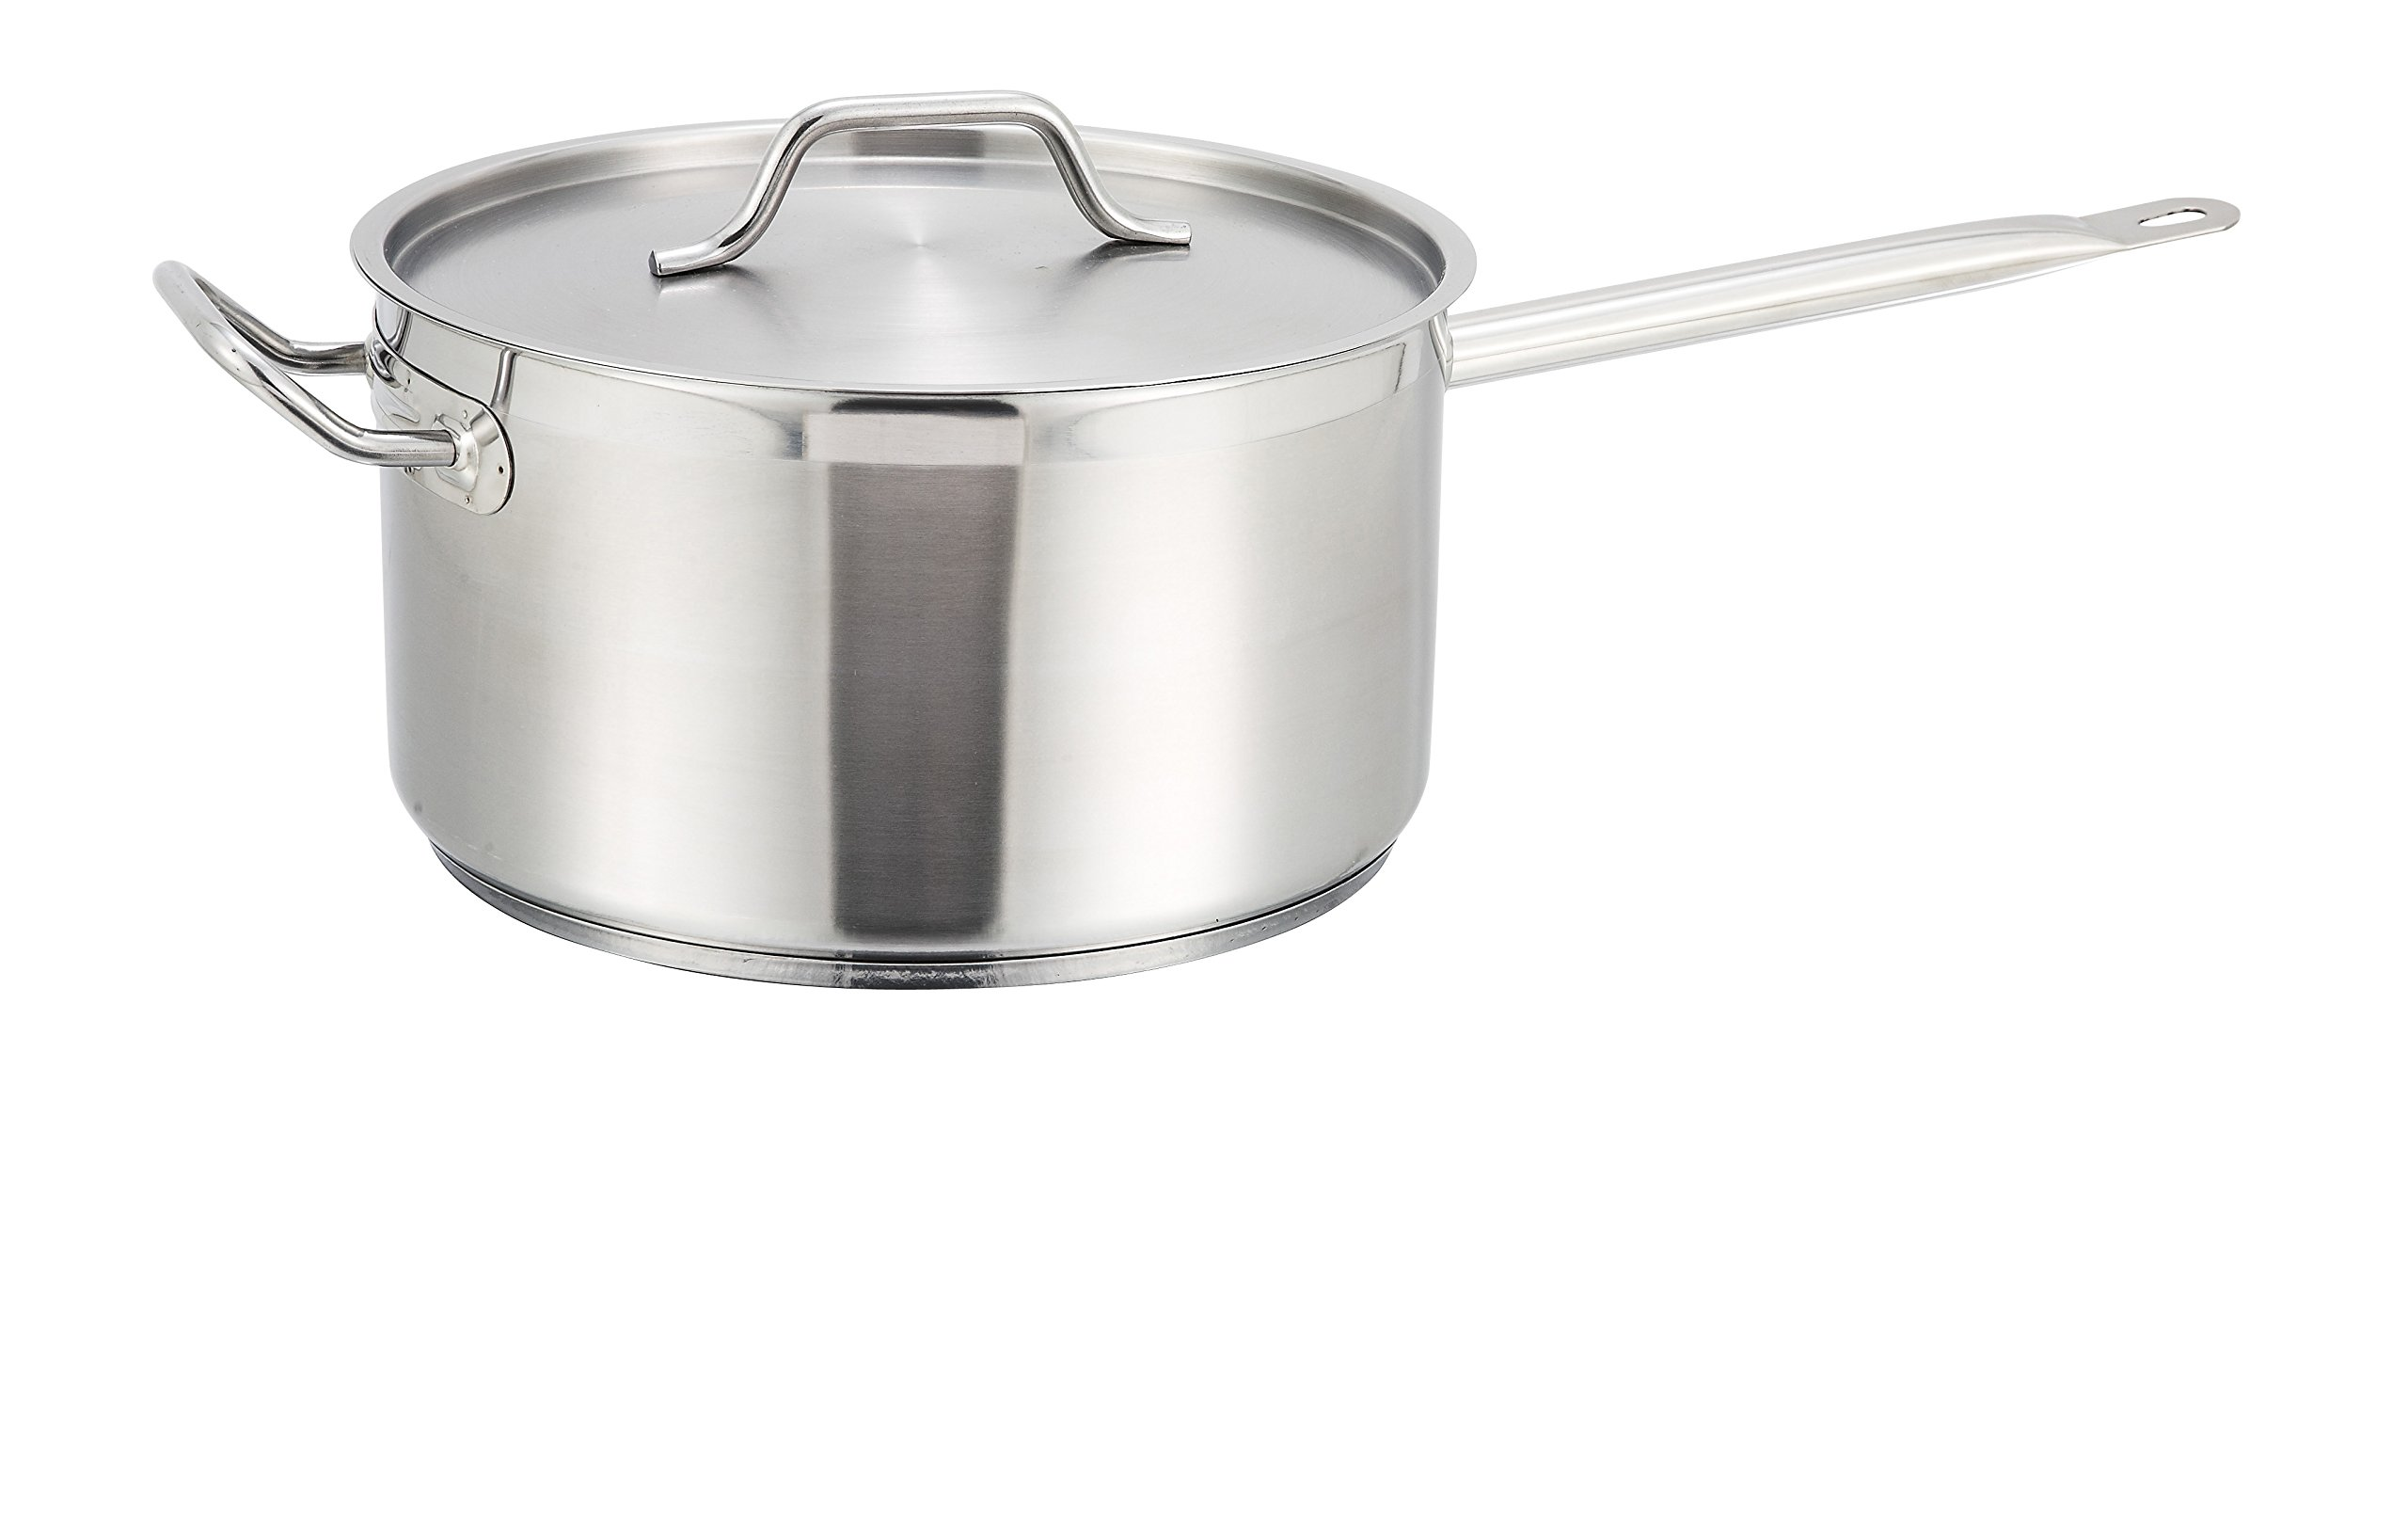 Winco SSSP-10, 10-Quart Stainless Steel Sauce Pan With Cover Helper Handle, Classic SaucePot with Lid